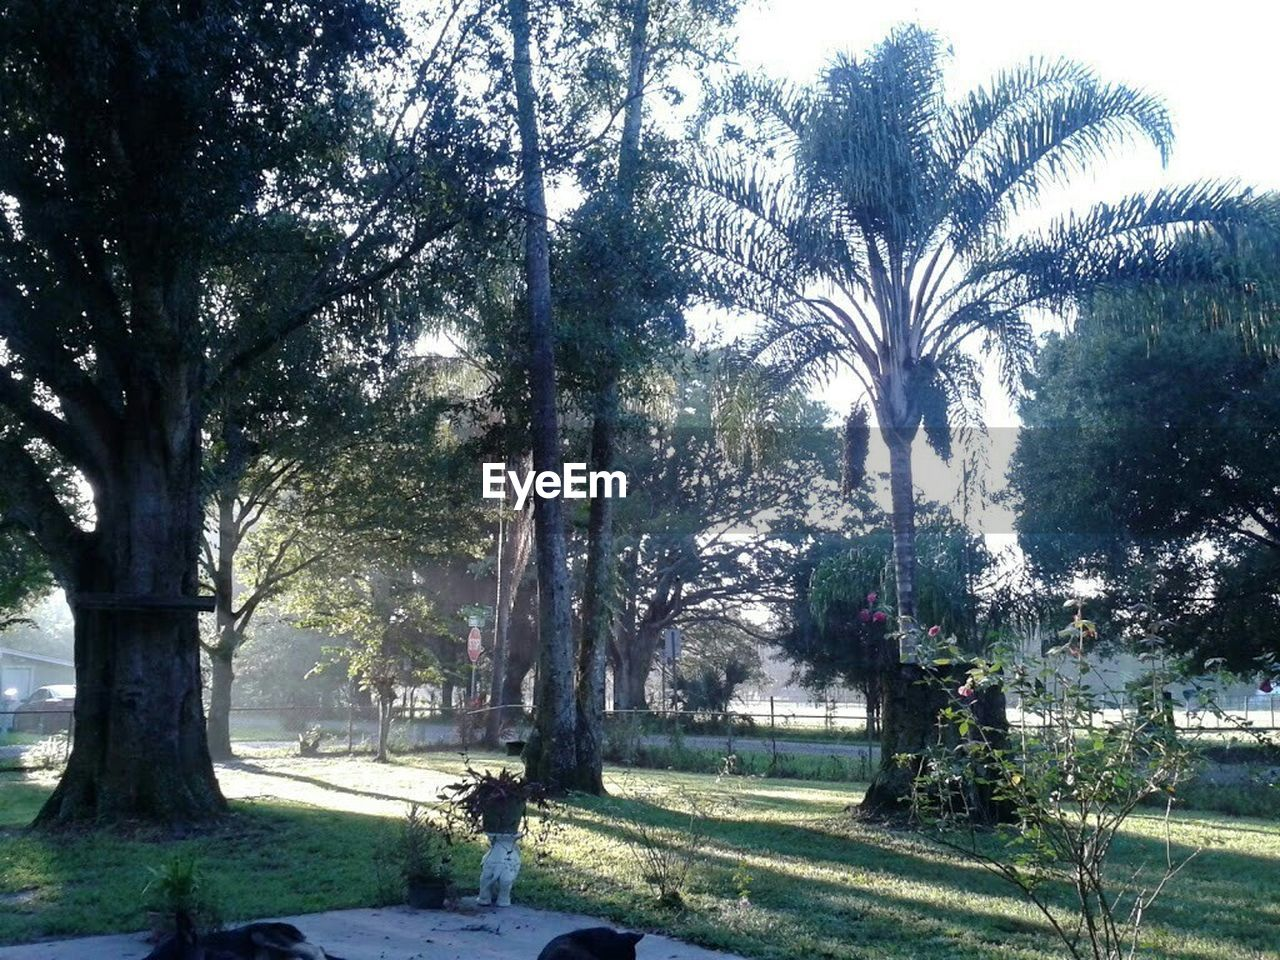 tree, palm tree, growth, nature, tranquility, no people, tranquil scene, beauty in nature, outdoors, tree trunk, landscape, scenics, day, grass